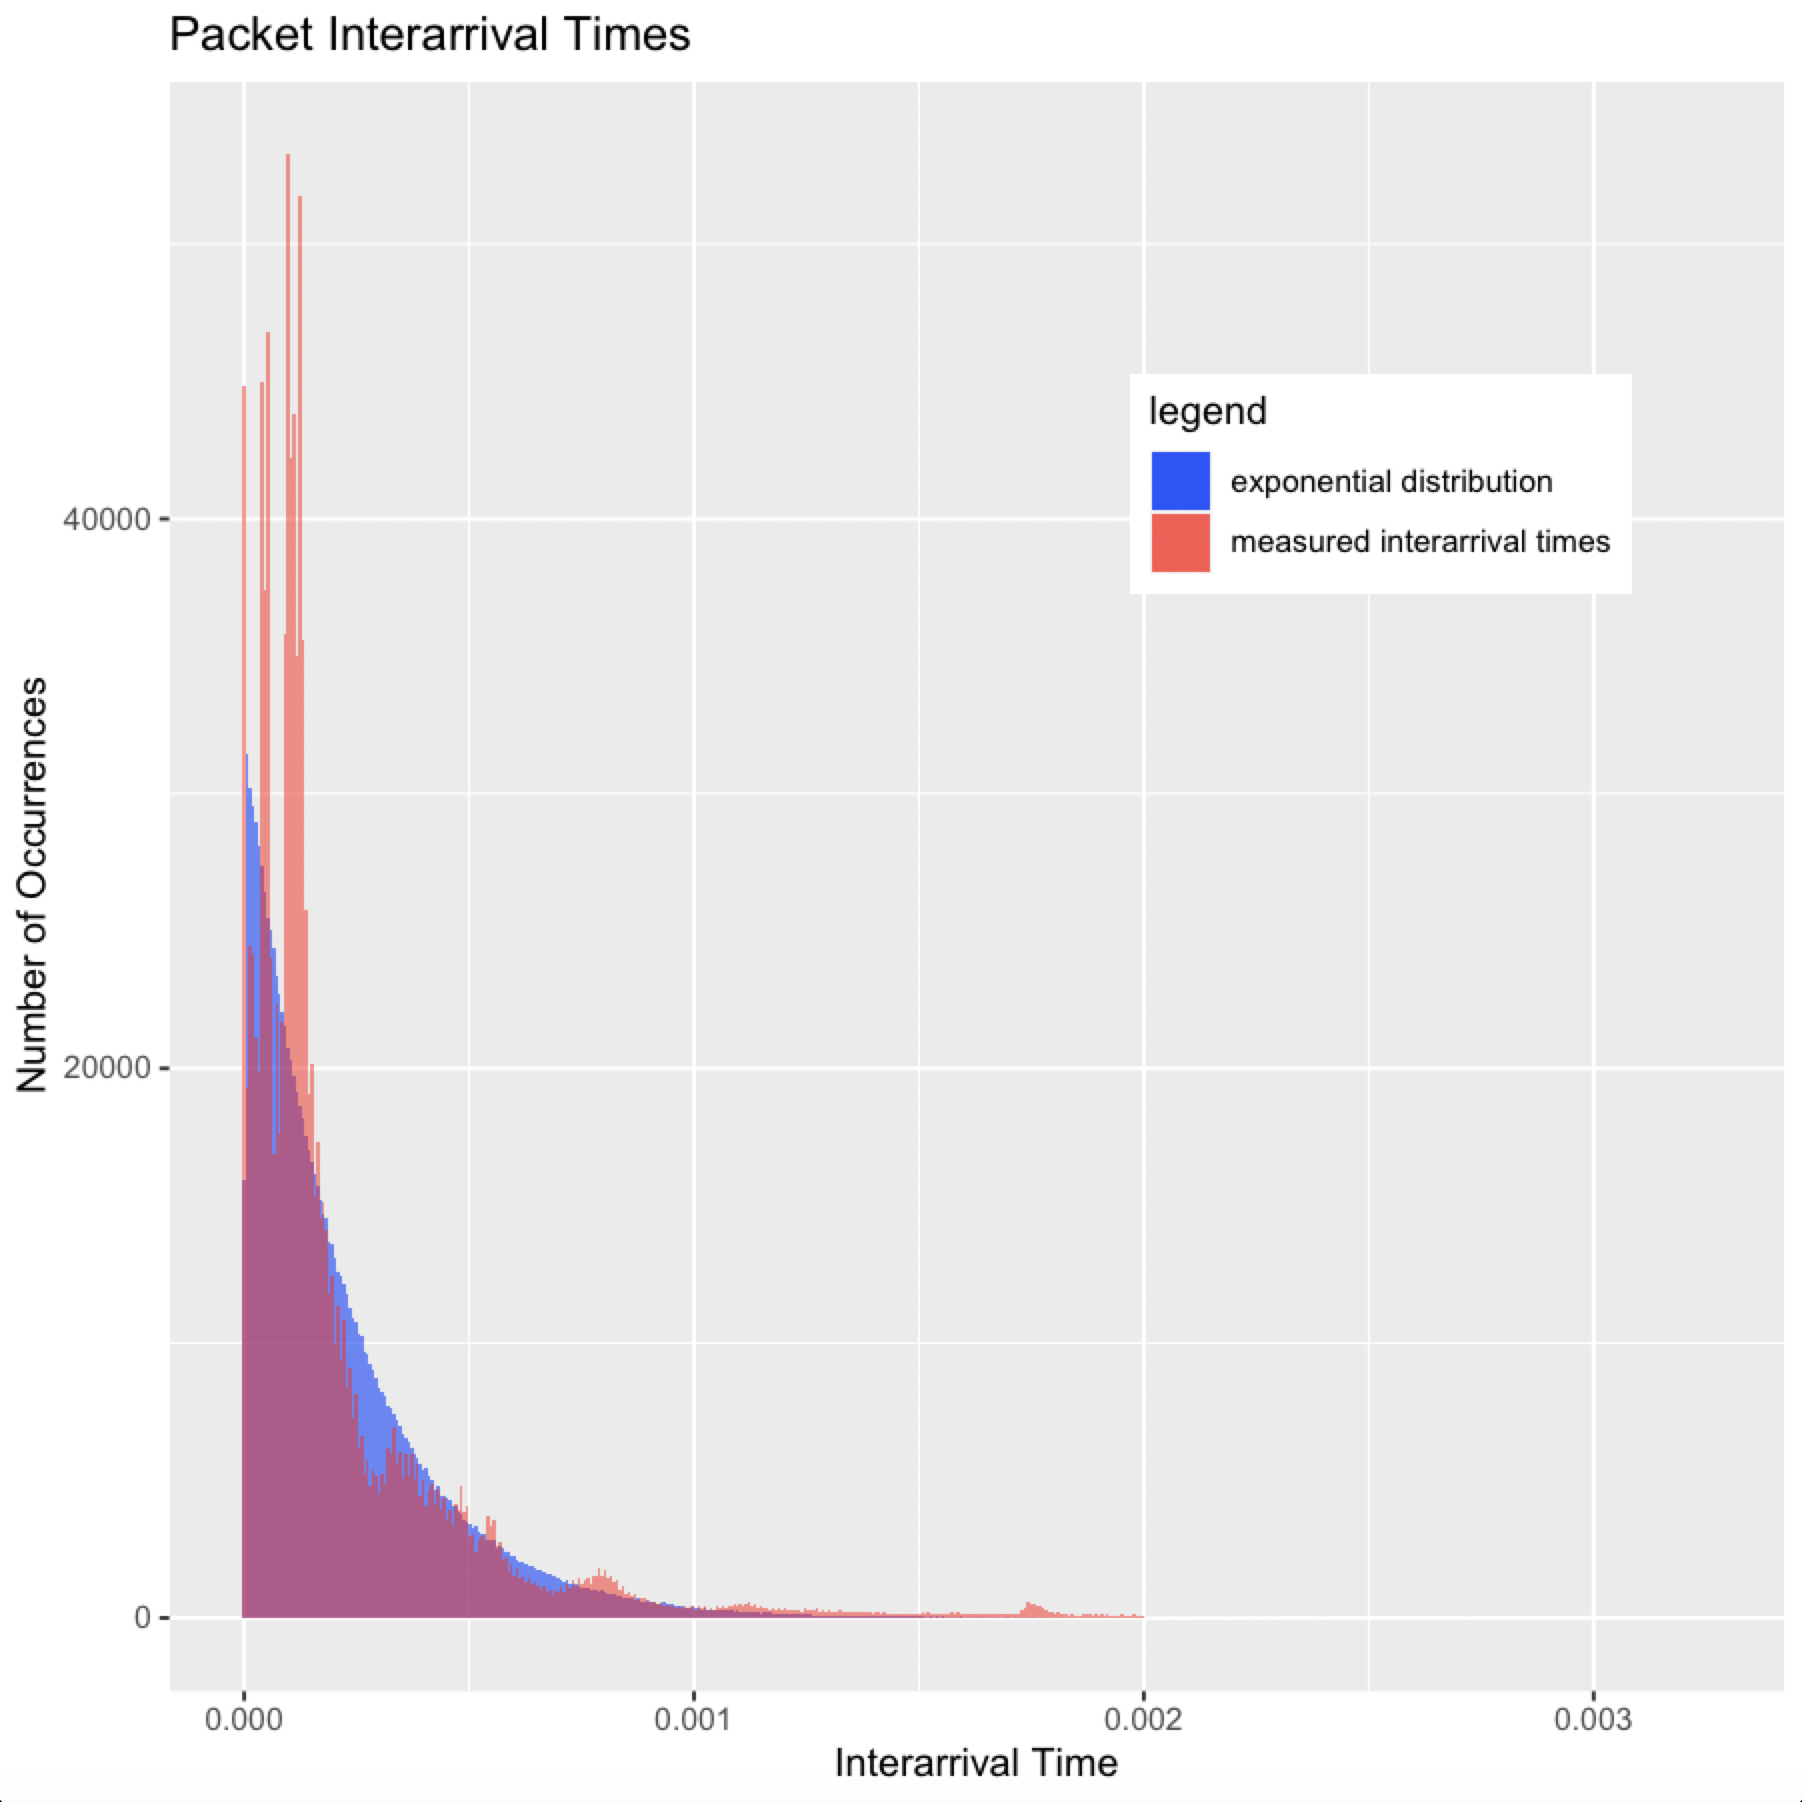 A histogram of measured packet interarrival times below .002s overlayed on an exponential distribution with 1/(mean interarrival time below .002s). The measured histogram is in red and has several spikes that go above the exponential distribution which is in blue.  However, the measured histogram does kind of line up with the exponential distribution on its decreasing curve.